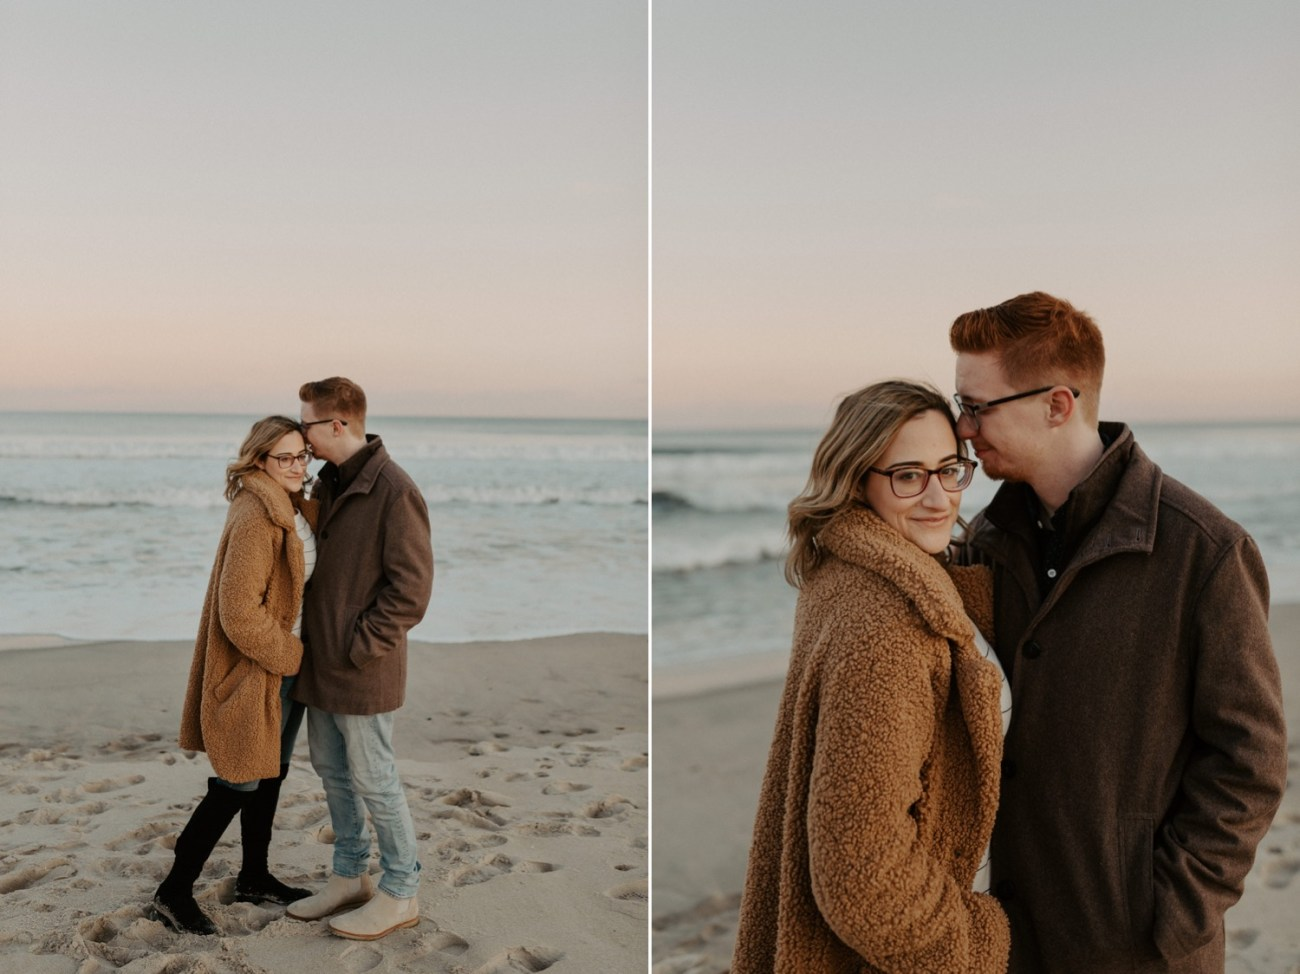 Asbury Park Engagement Photos Winter Beach Engagement Session New Jersey Wedding Photographer Anais Possamai Photography 035